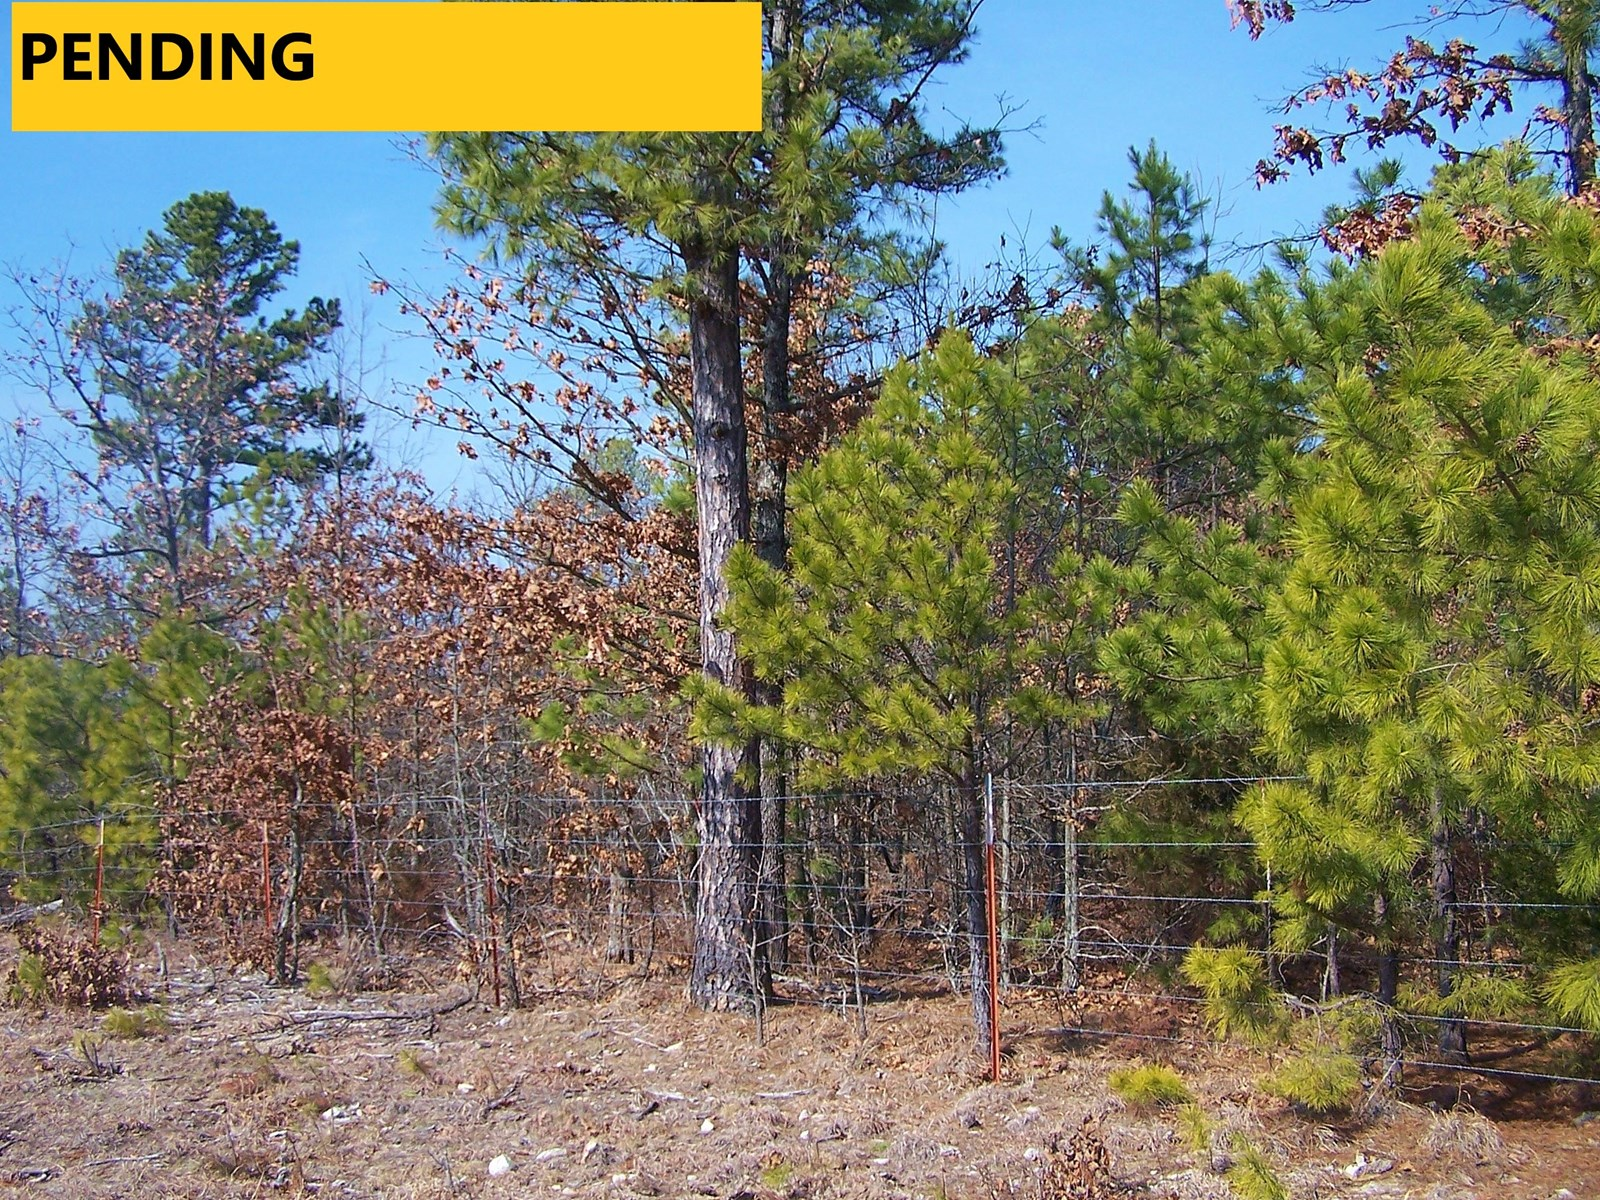 LAND FOR SALE IN MARION COUNTY ARKANSAS